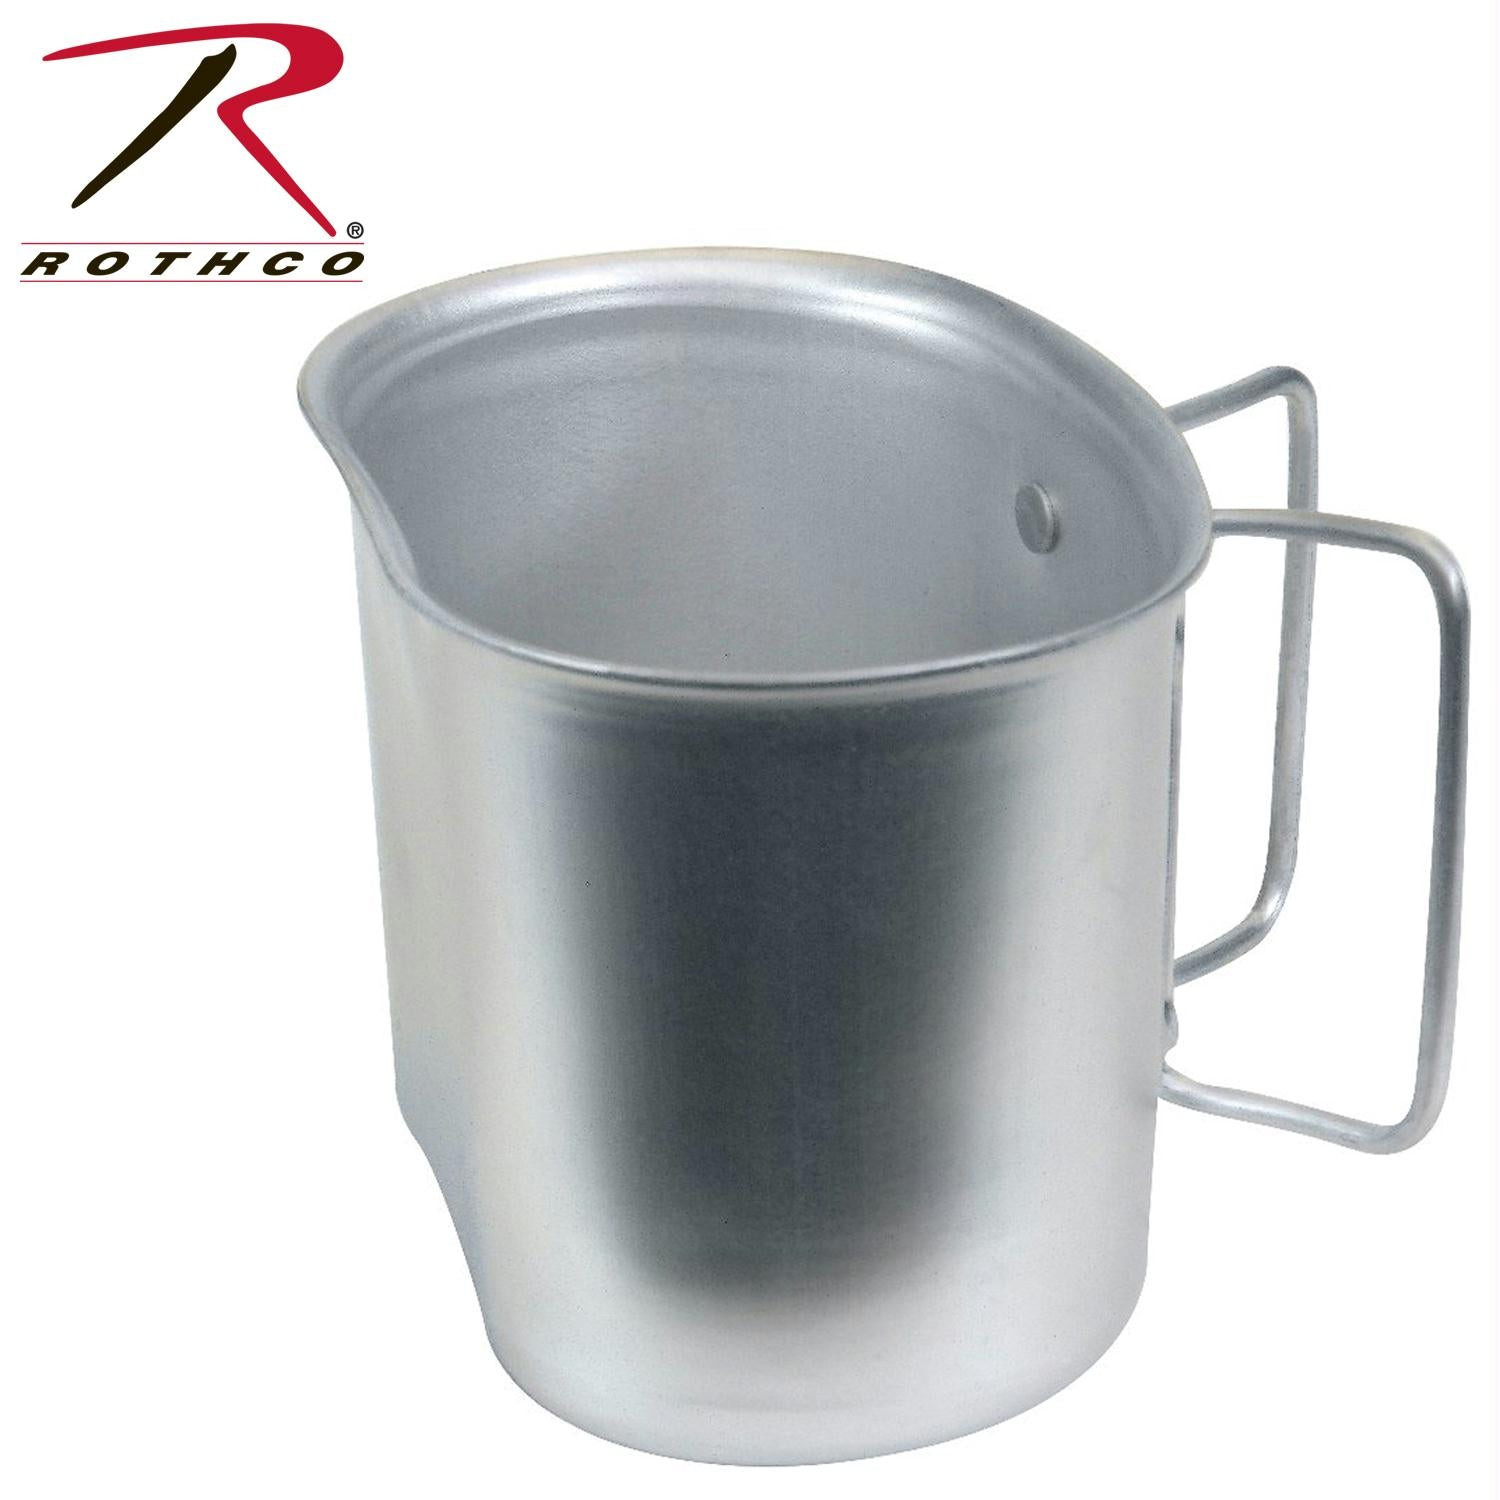 Rothco Gi Style Aluminum Canteen Cup - Silver